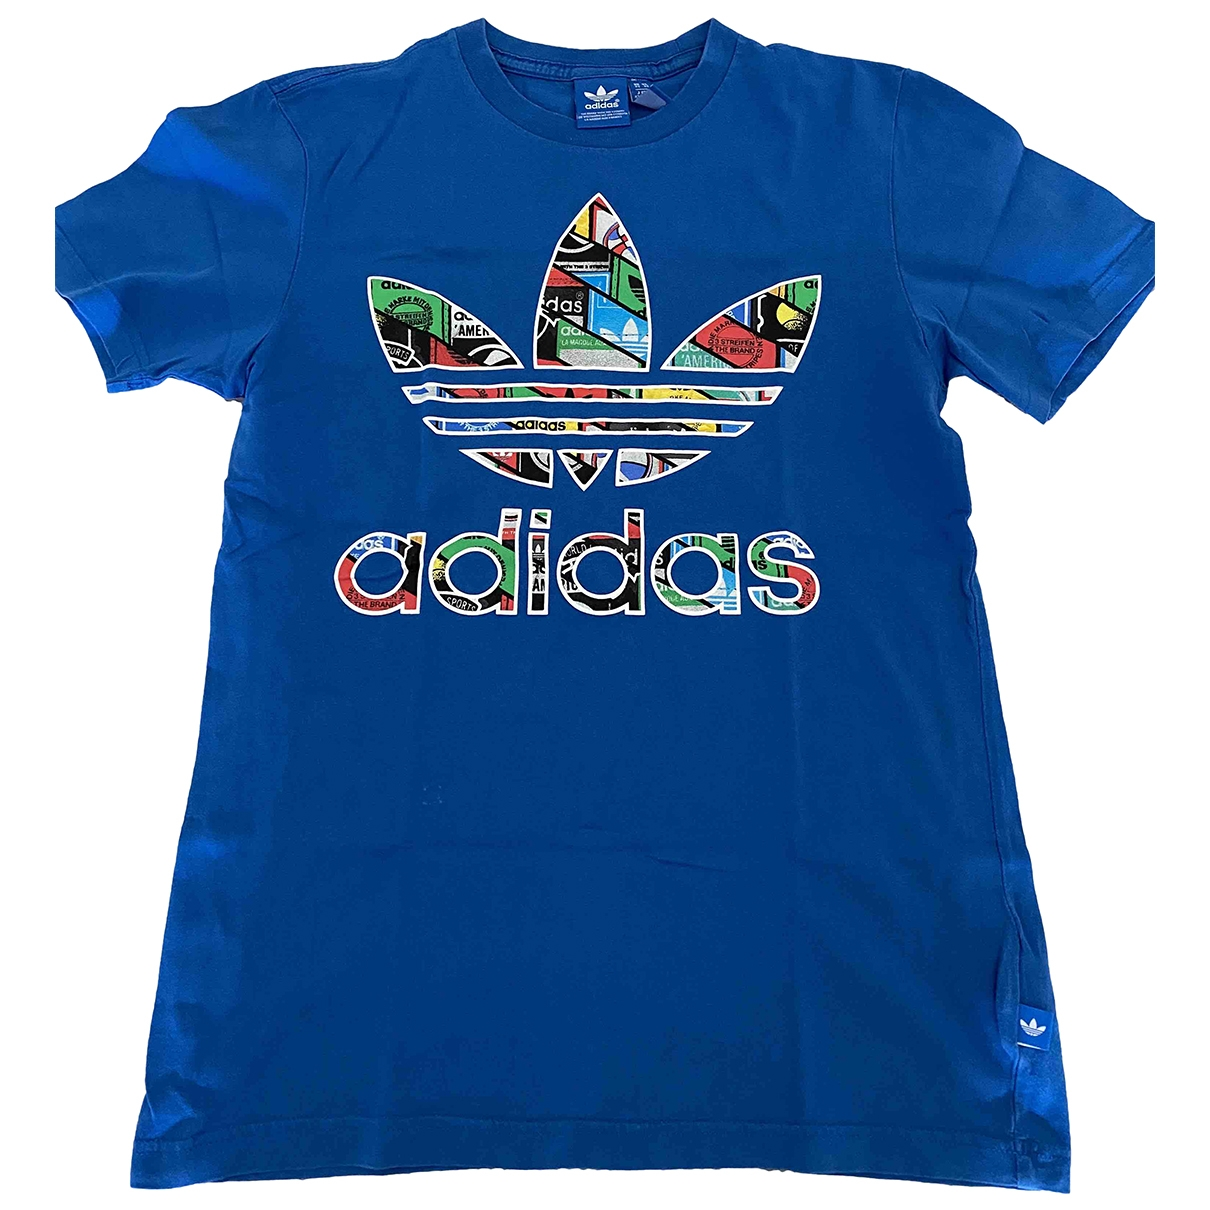 Adidas \N Blue Cotton  top for Kids 12 years - XS FR